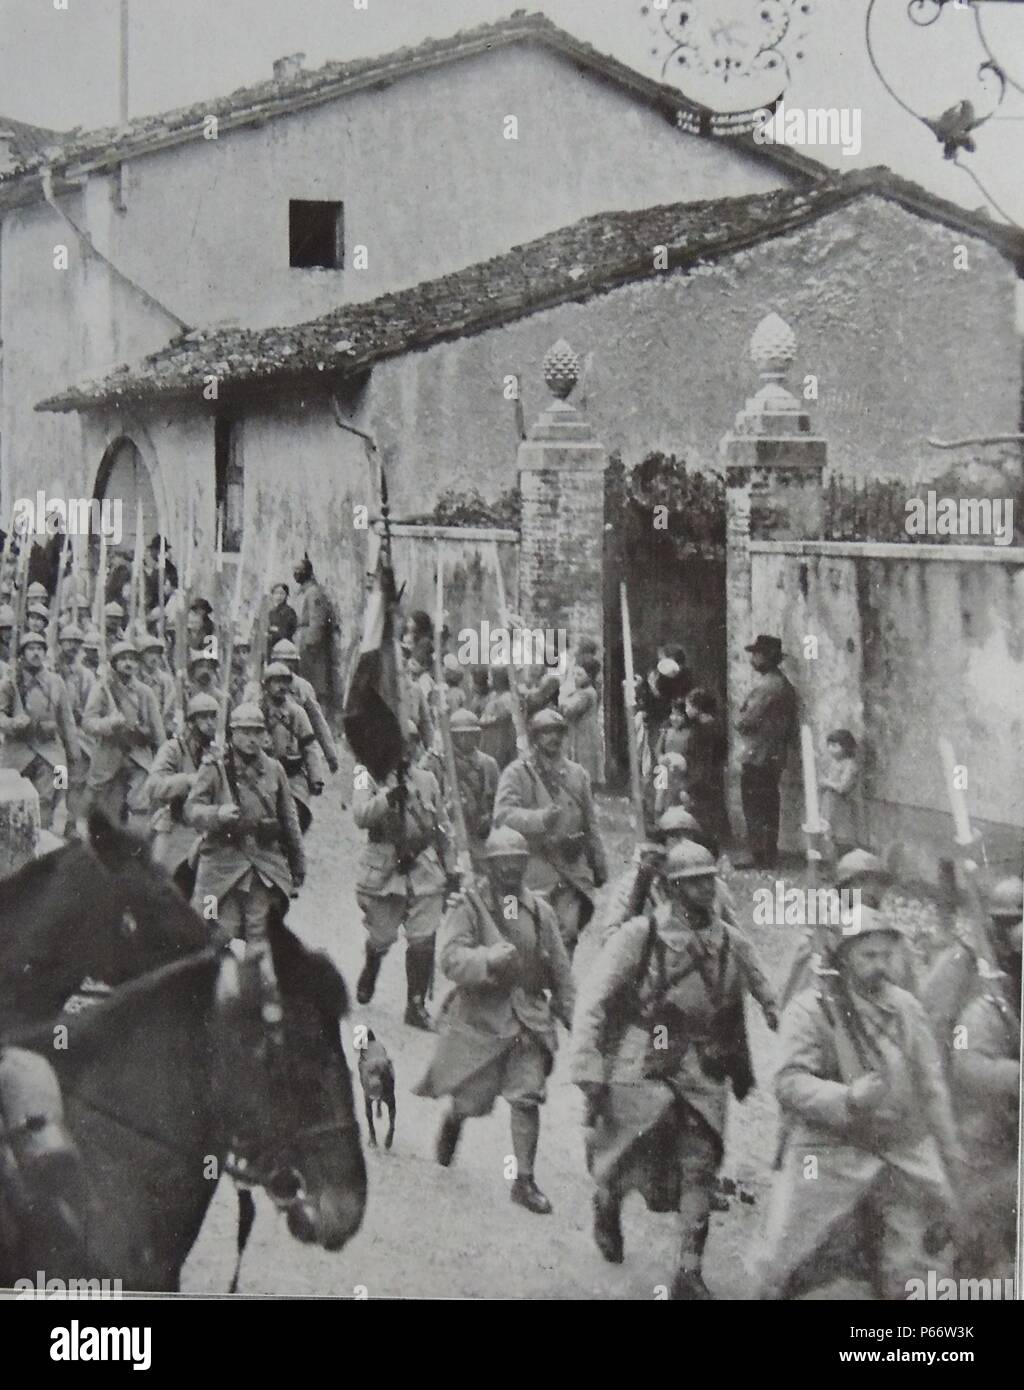 French army in Italy in World war One, 1917 - Stock Image